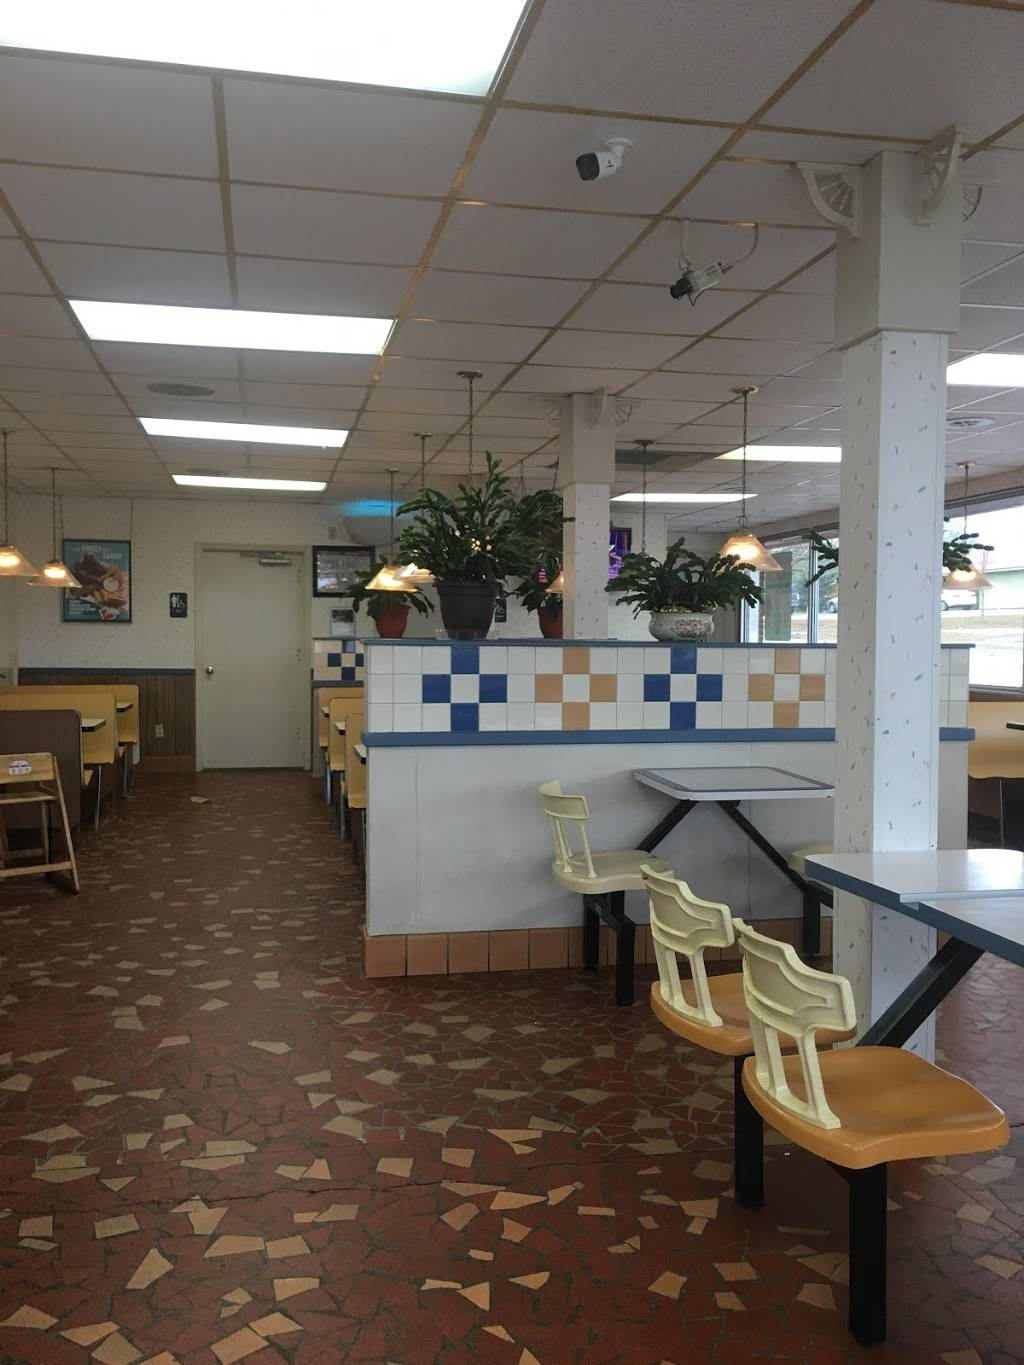 Dairy Queen | restaurant | 42 E W Oak St, McRae-Helena, GA 31055, USA | 2298686394 OR +1 229-868-6394